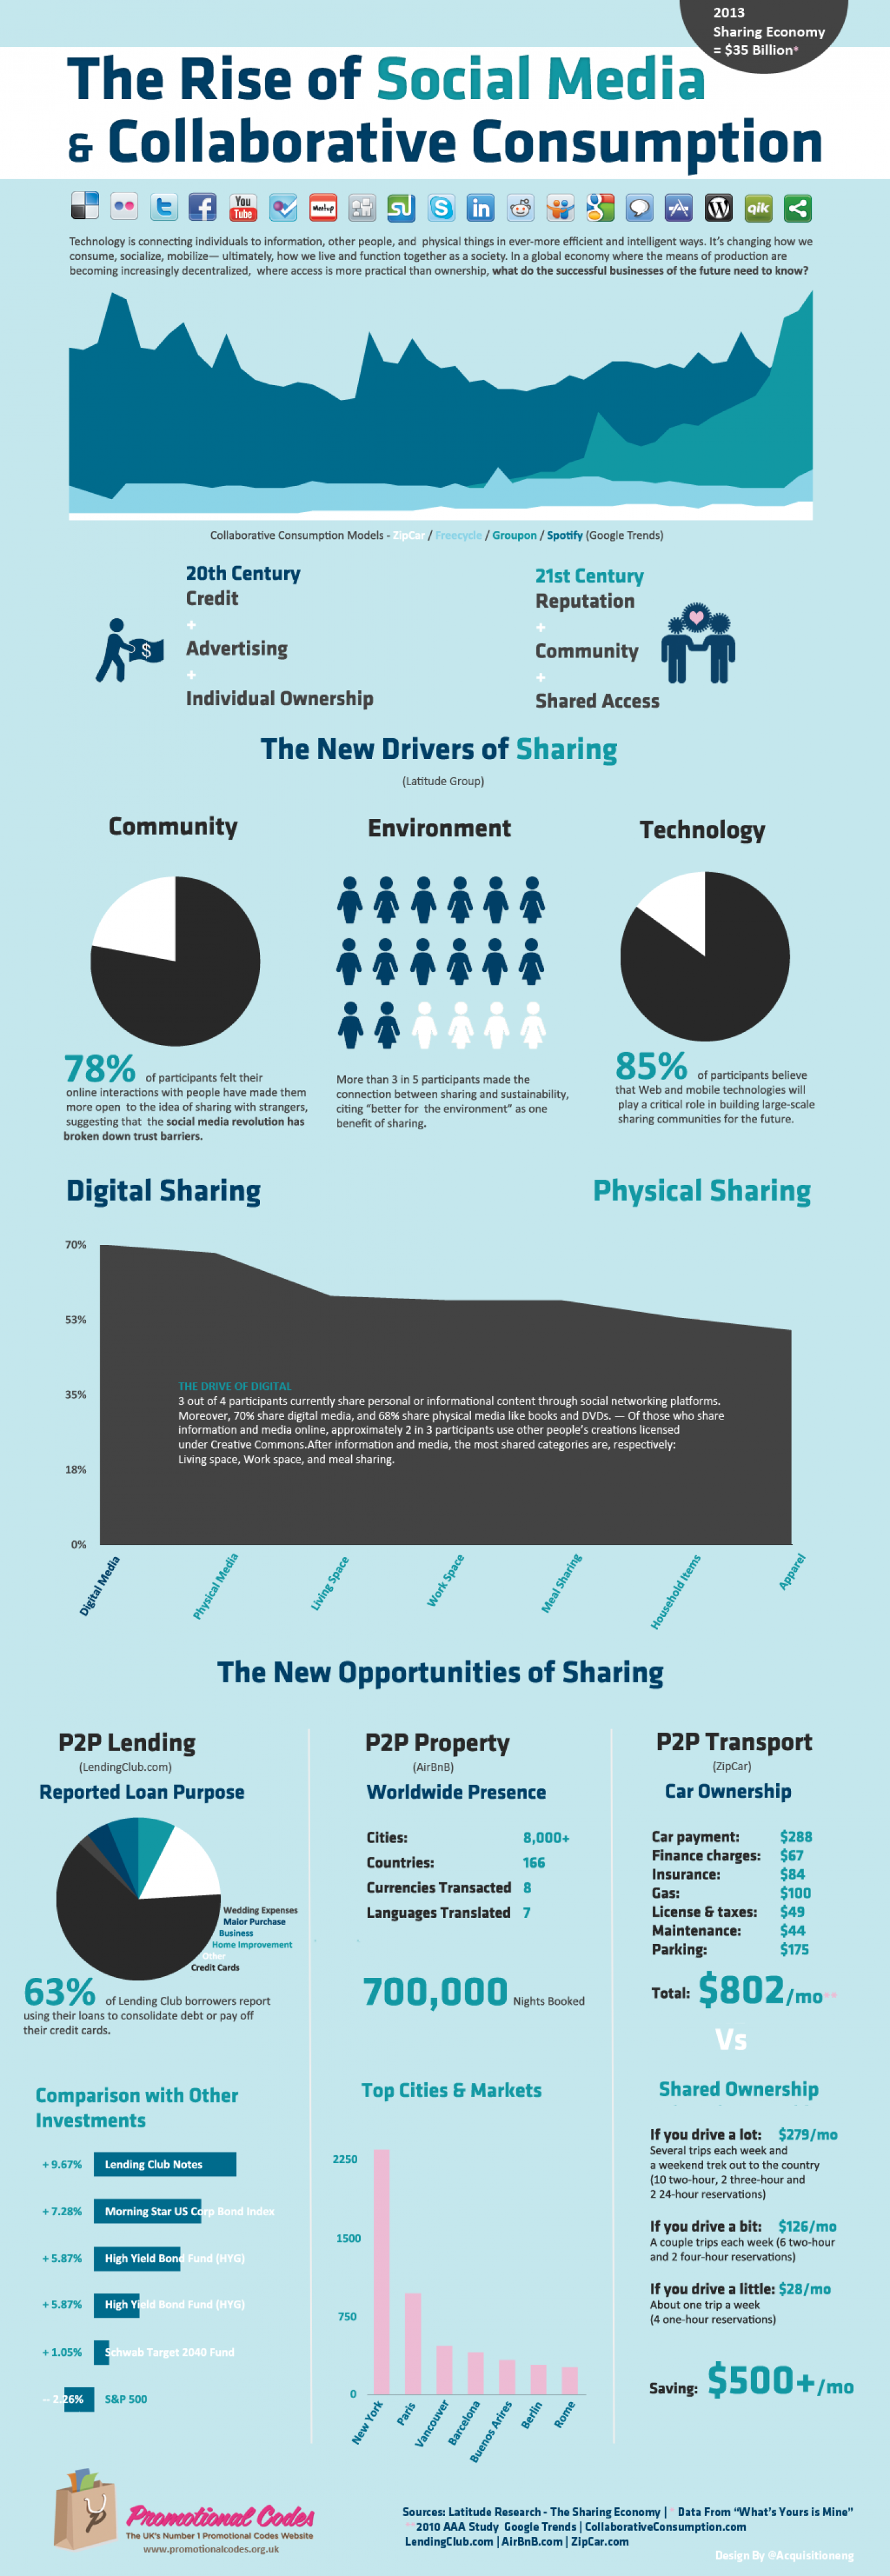 The Rise of Social Media & Collaborative Consumption Infographic